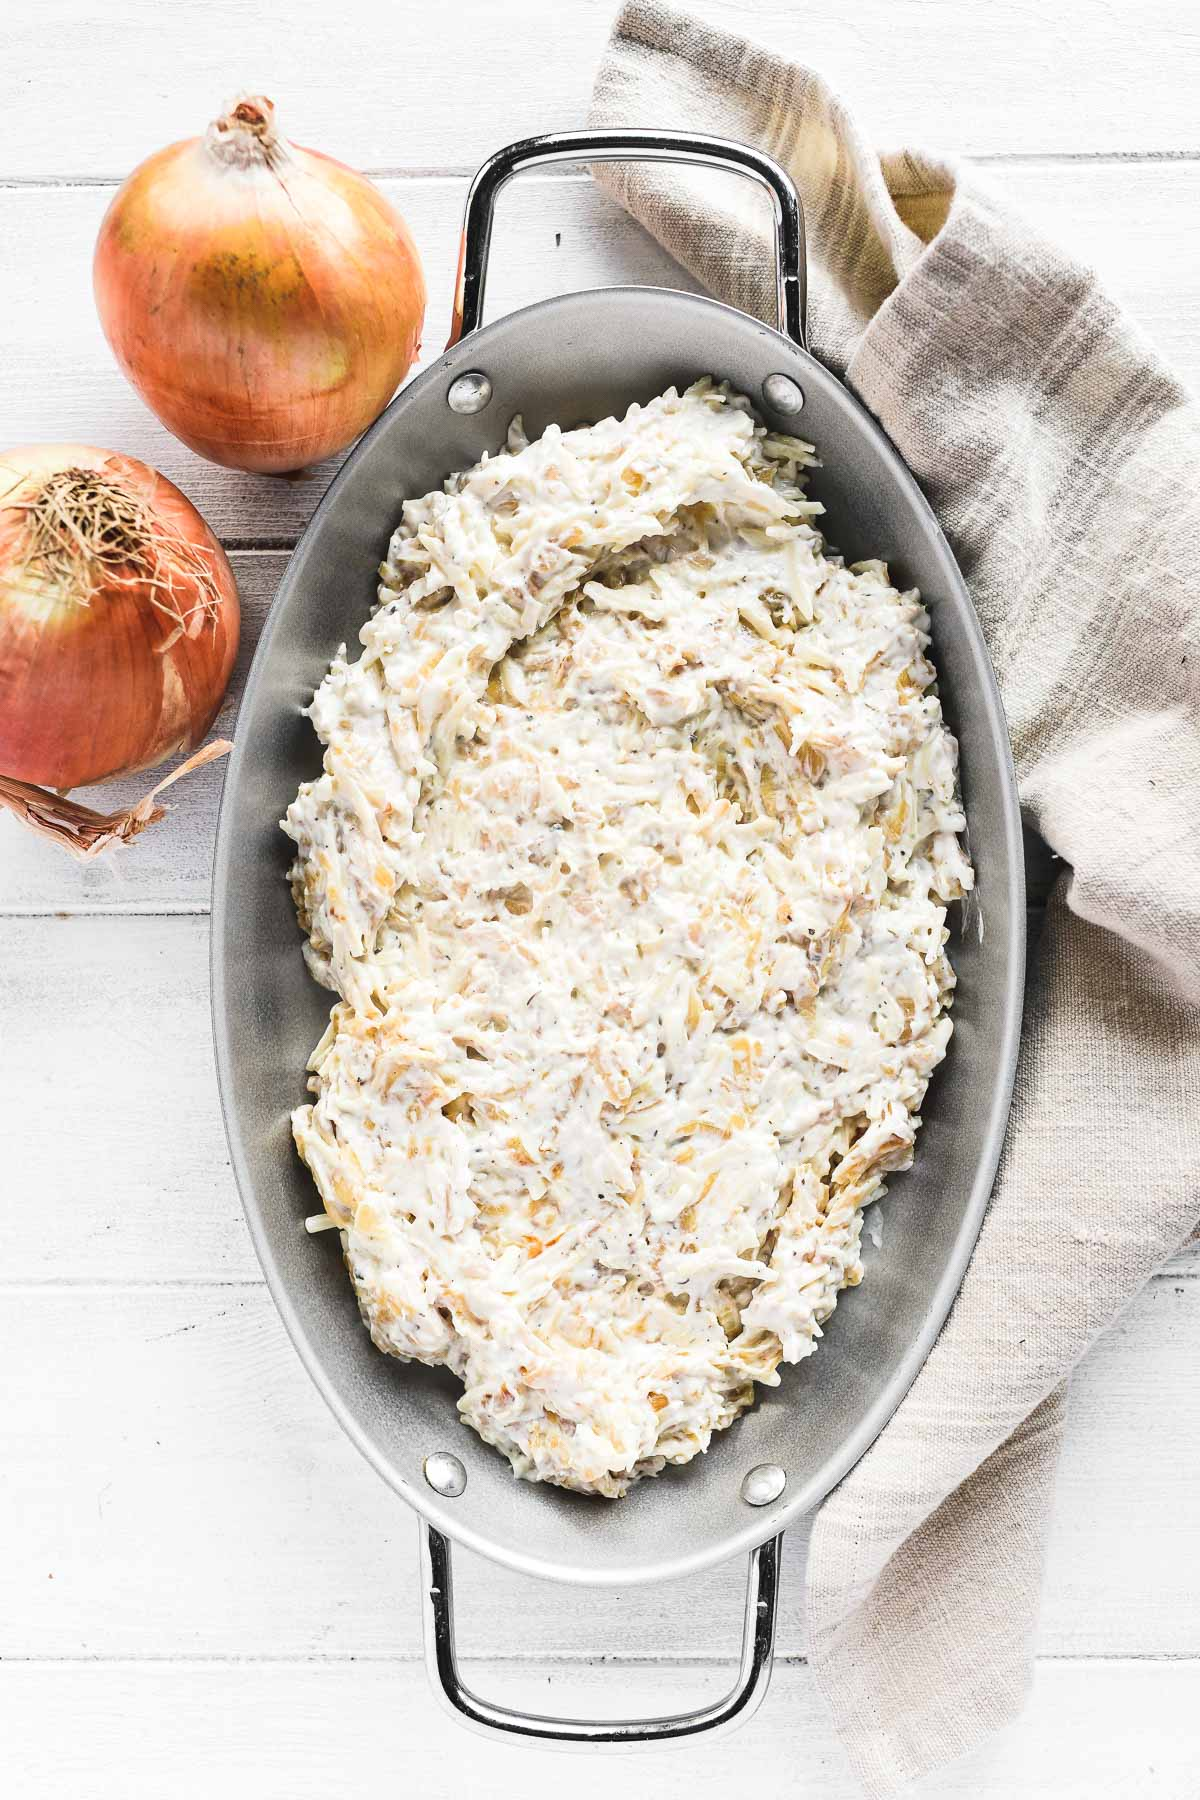 caramelized onion dip in a baking dish